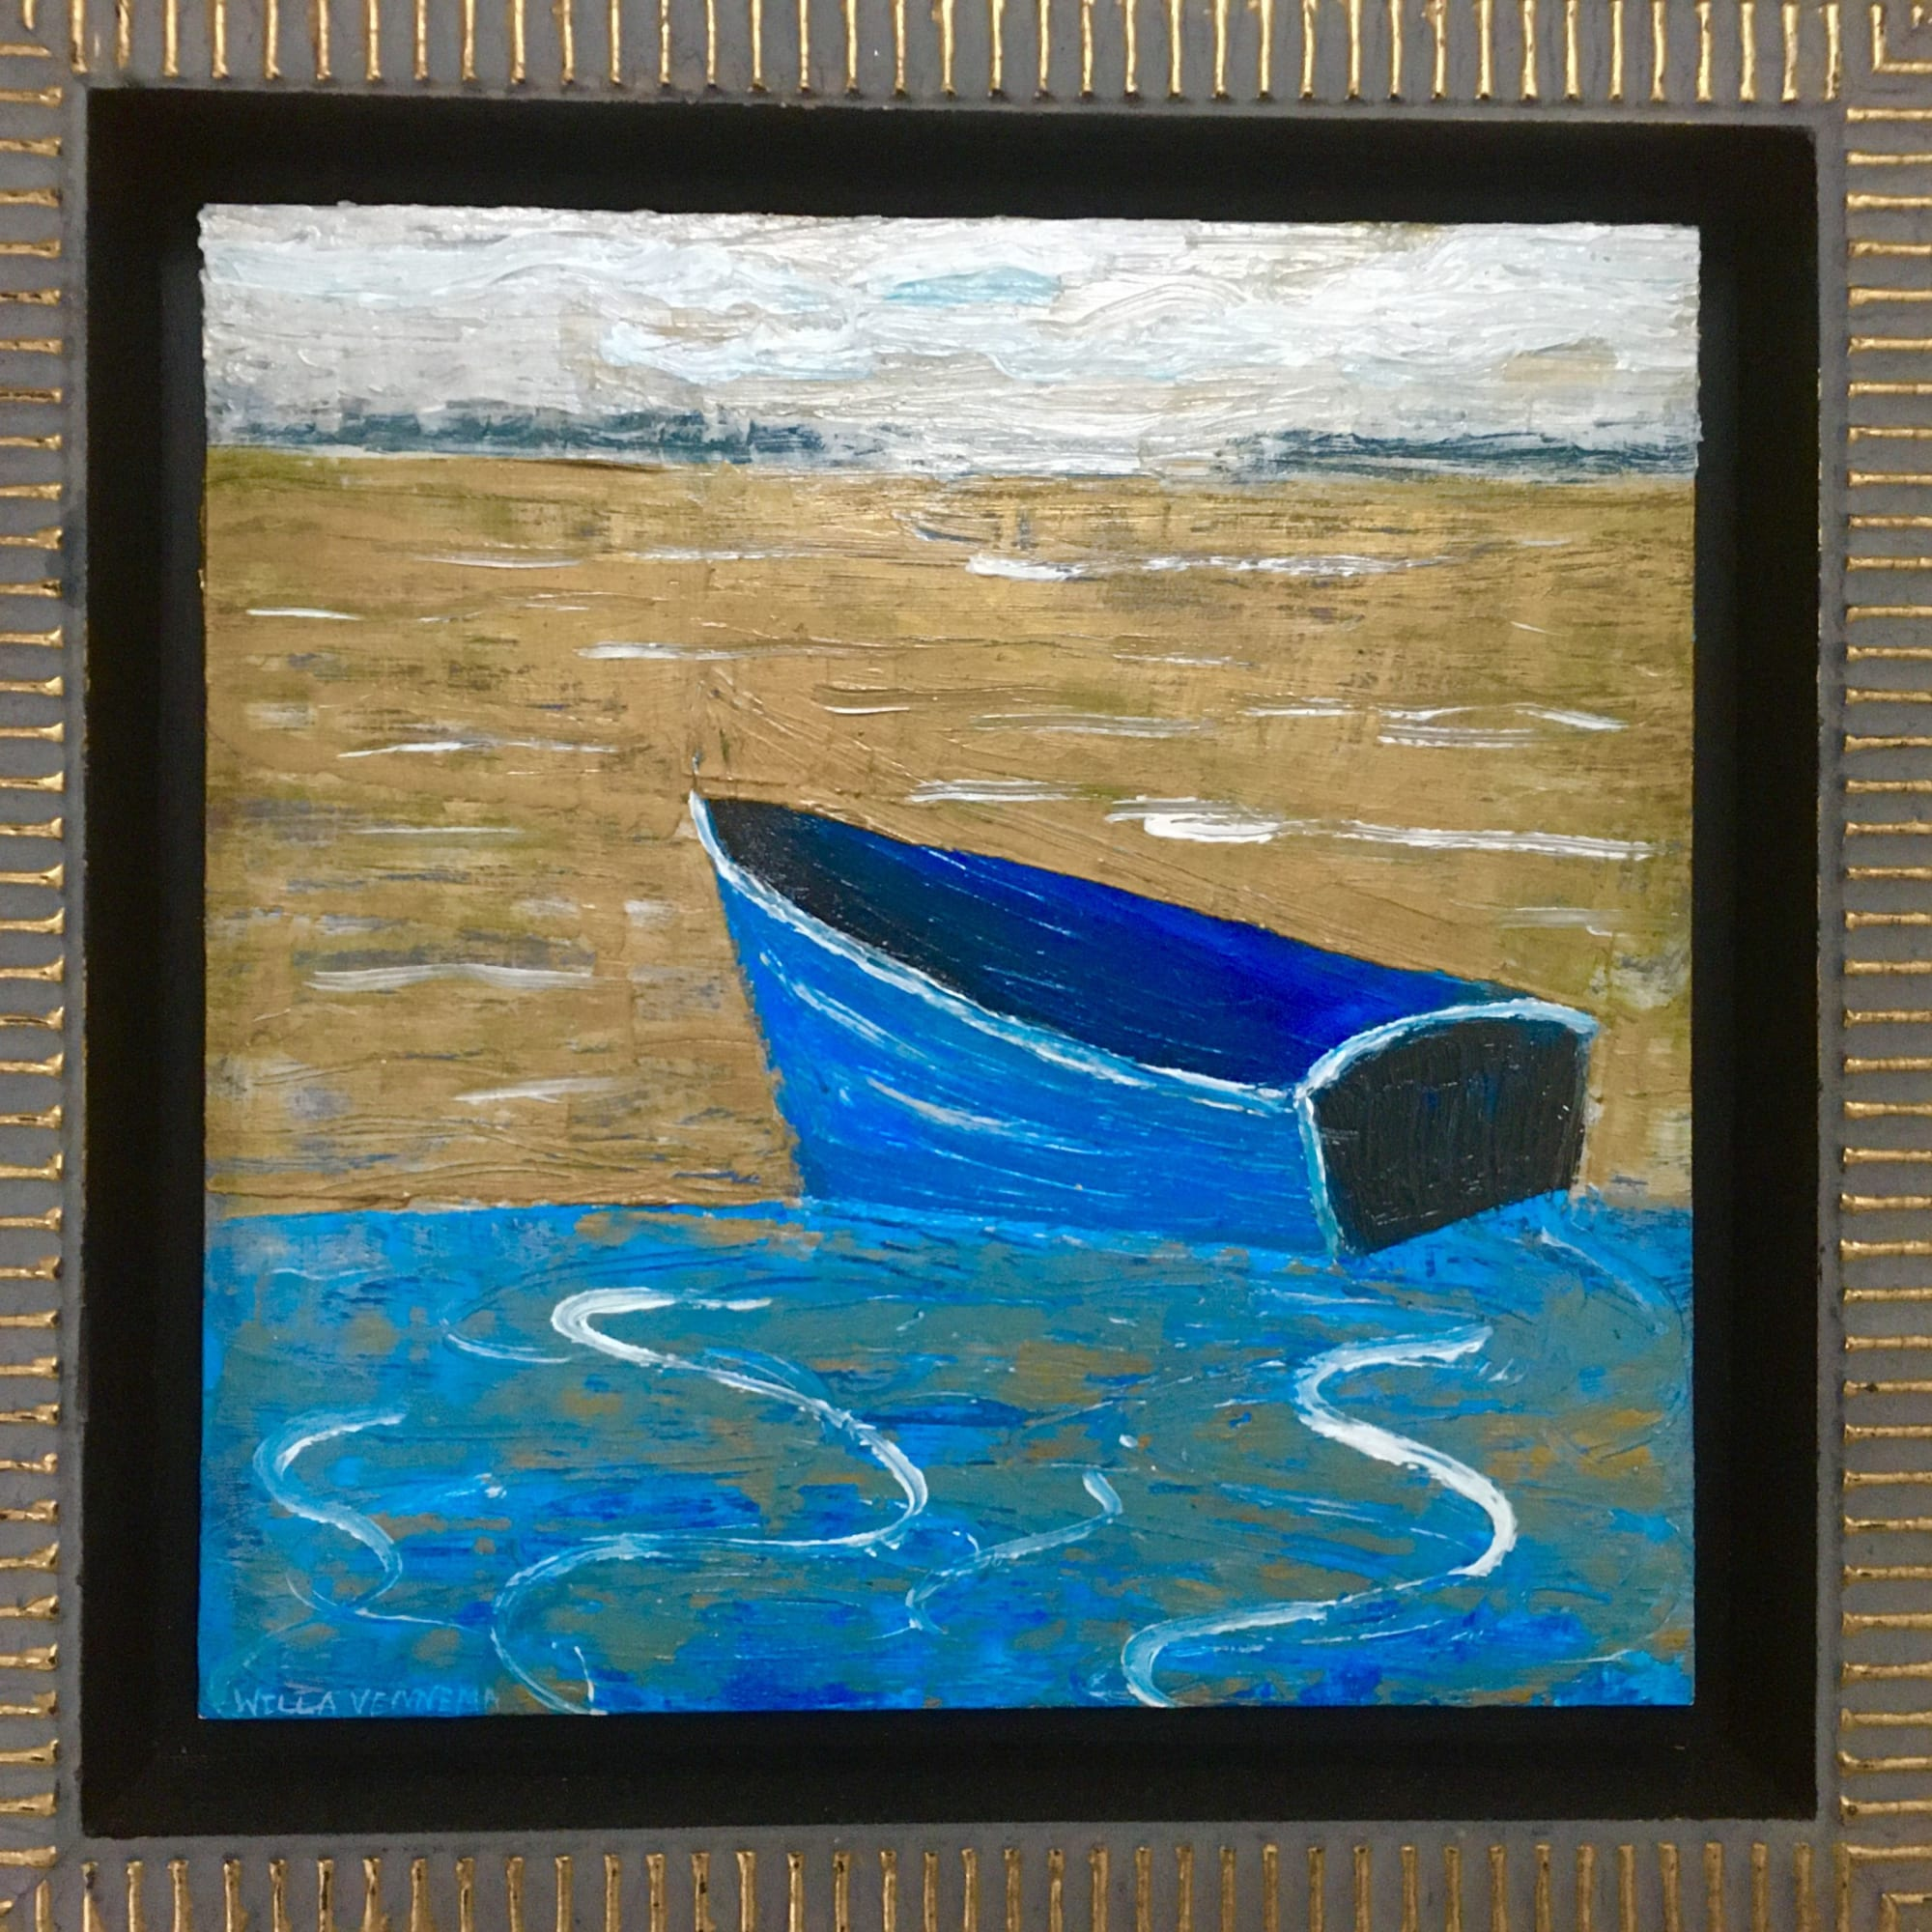 Paintings by willa vennema seen at Private Residence, Swans Island - Row Boat at Rest